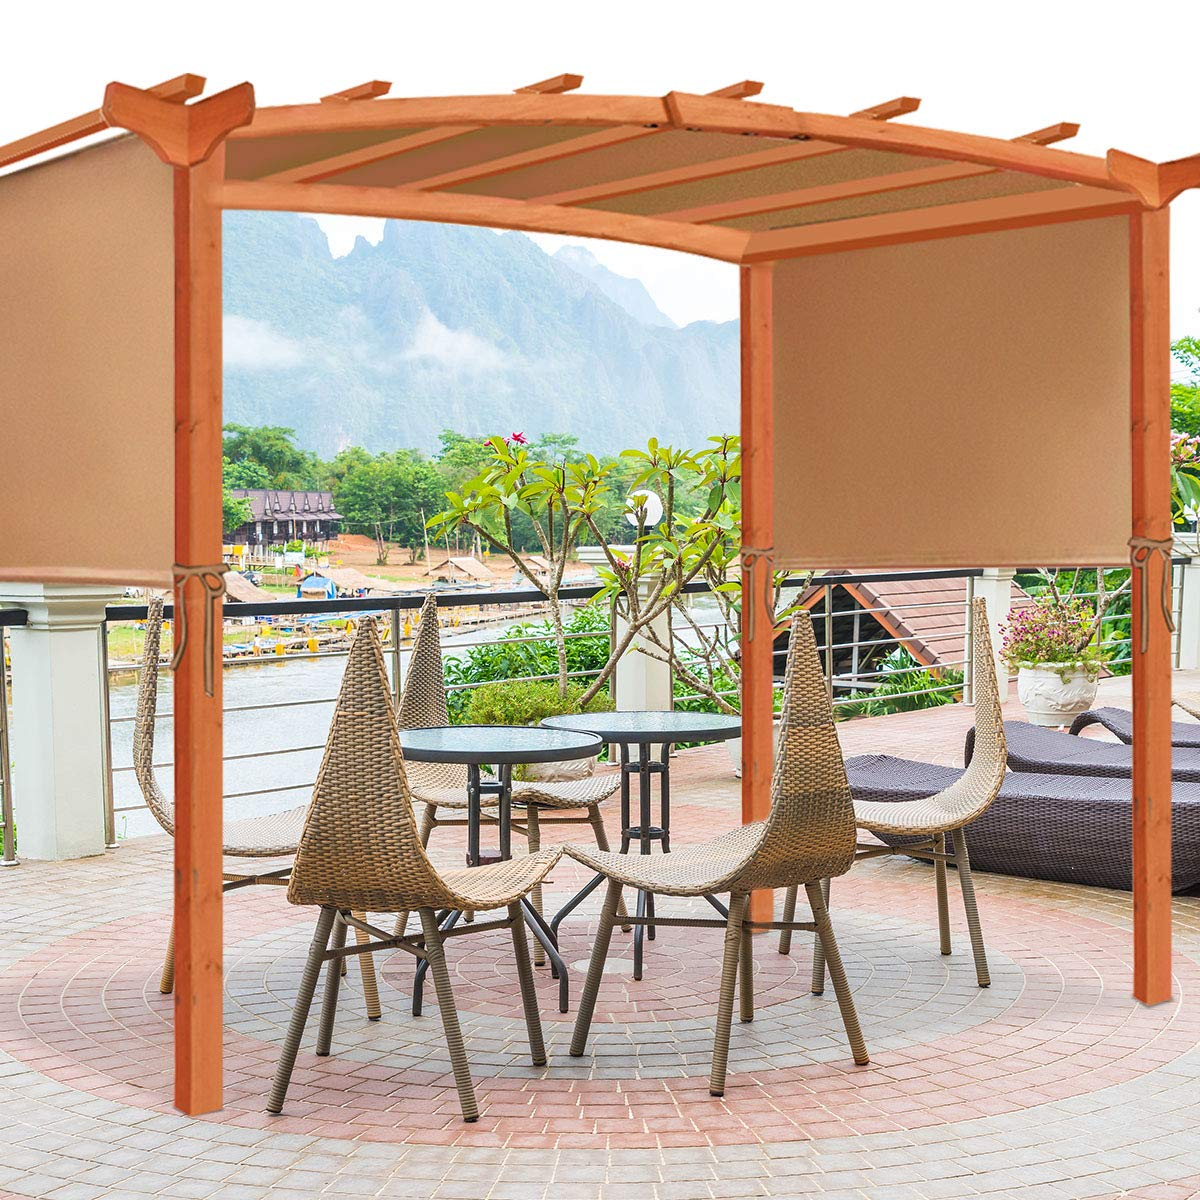 Tangkula 6.7x17 Universal Replacement Canopy for Pergola Structures